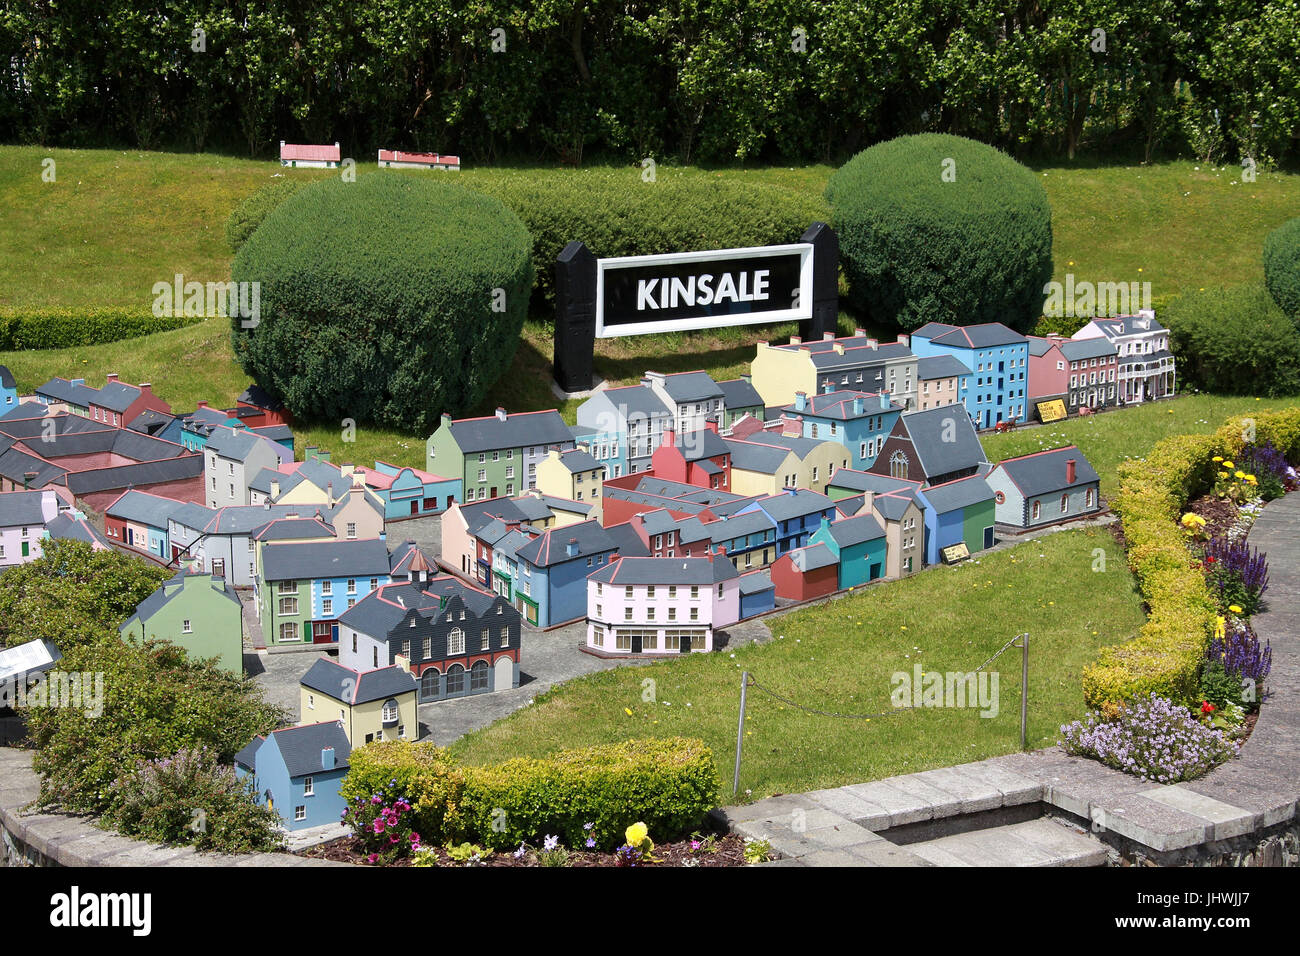 West Cork Model Railway Village at Clonakilty in Ireland - Stock Image